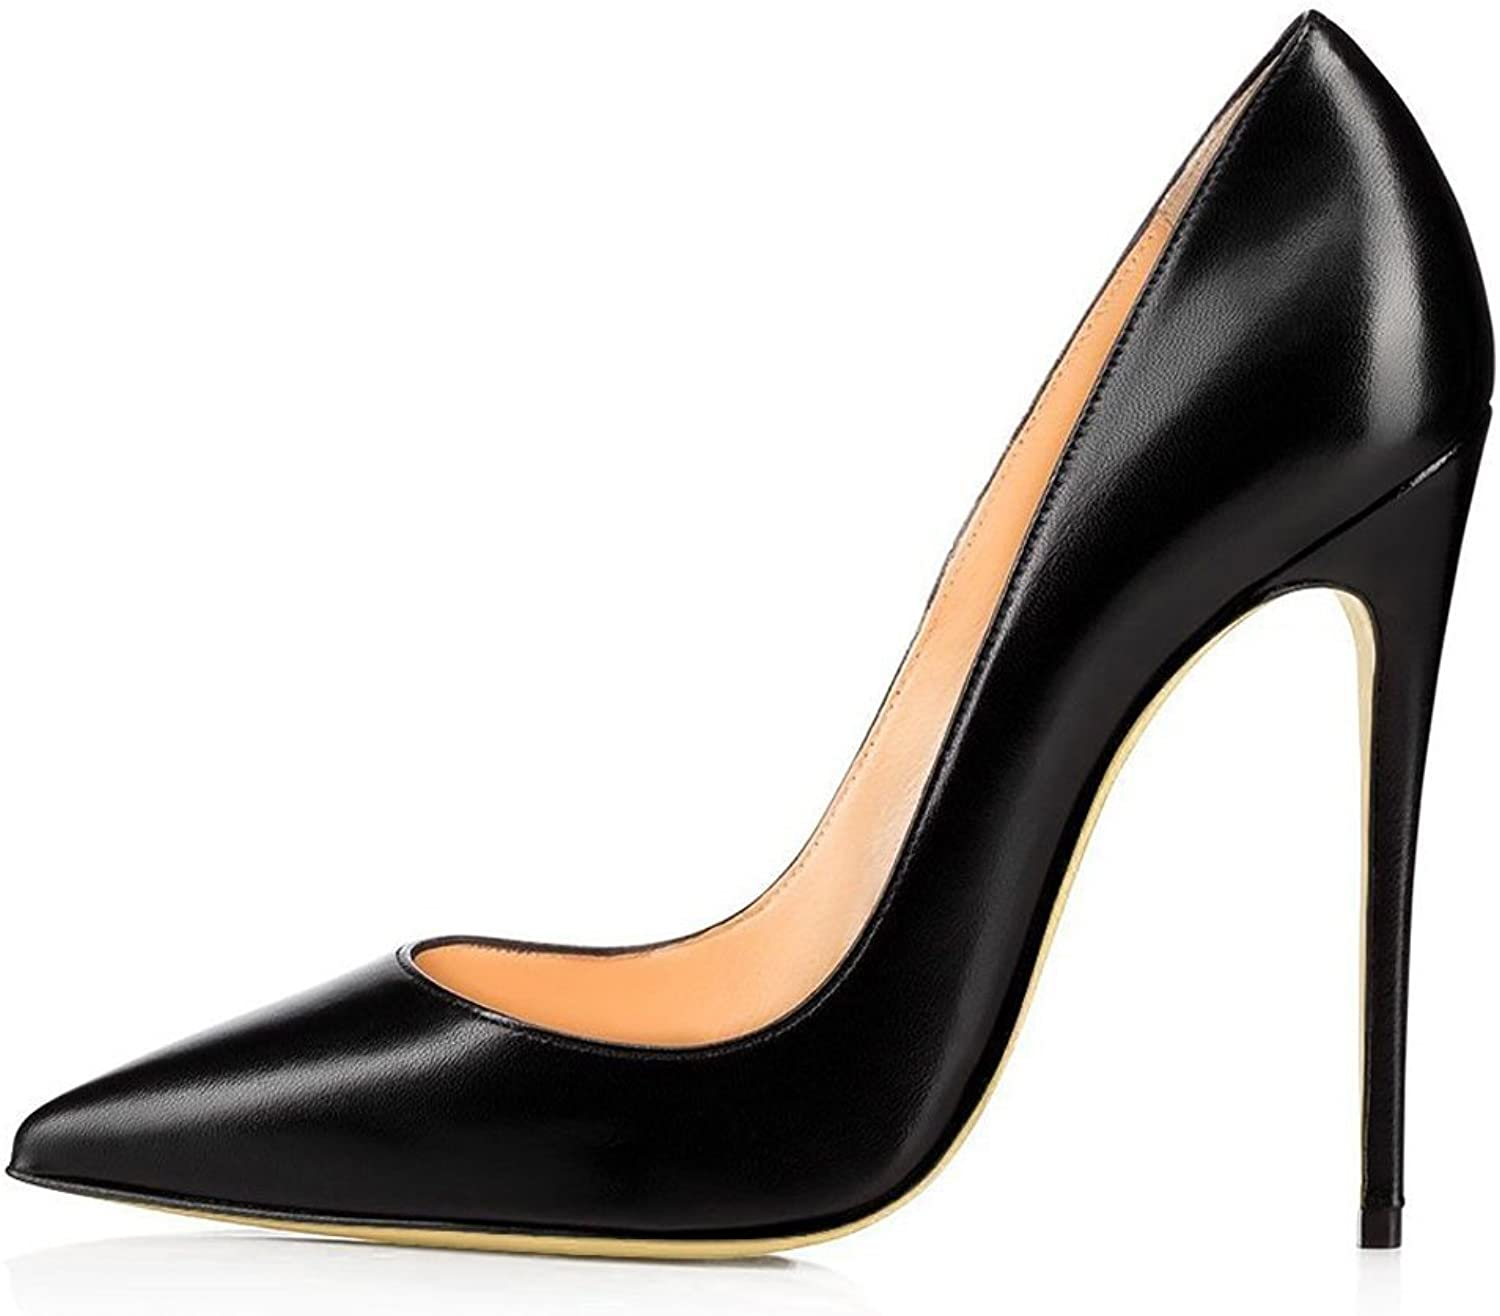 Kmeioo High Heels, Women's Pointed Toe High Heel Slip On Stiletto Pumps Evening Party Basic shoes Plus Size-Black-PU 7.5 M US